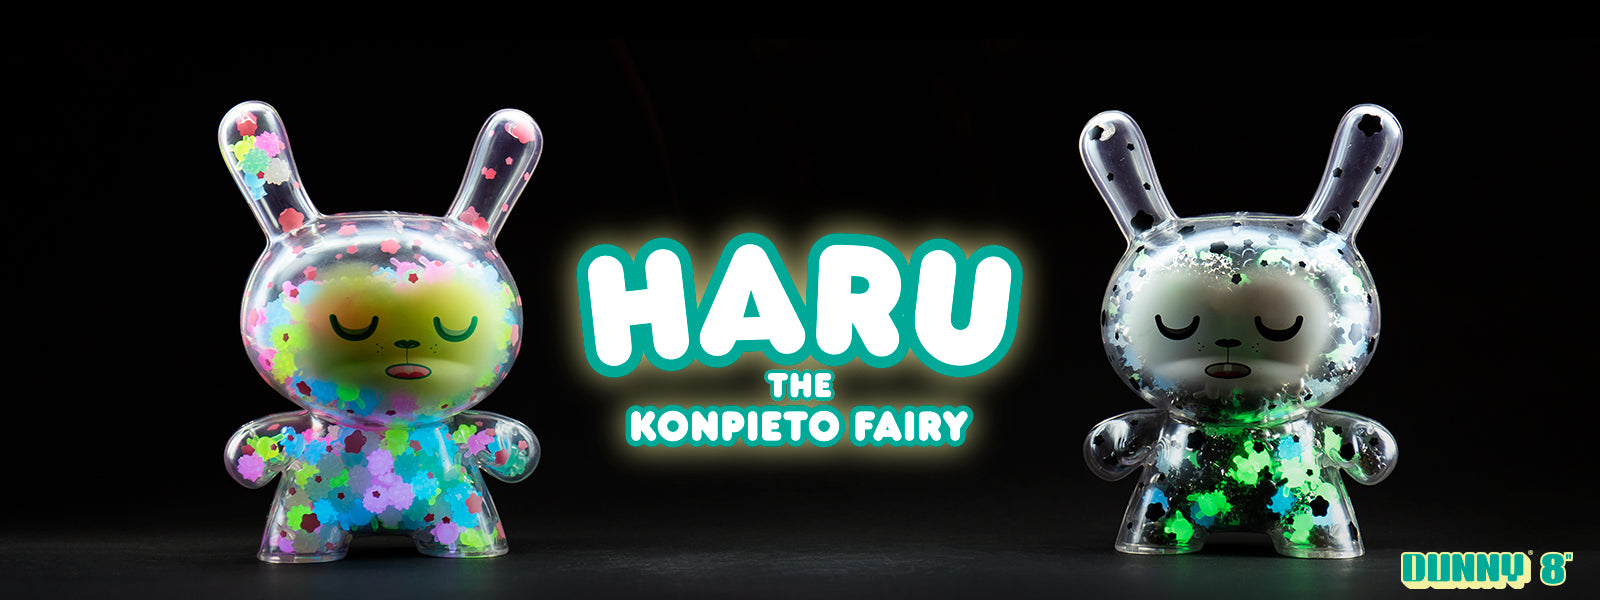 "Haru the Konpieto Fairy 8"" Dunnys - Kidrobot Dunny Art Figures"